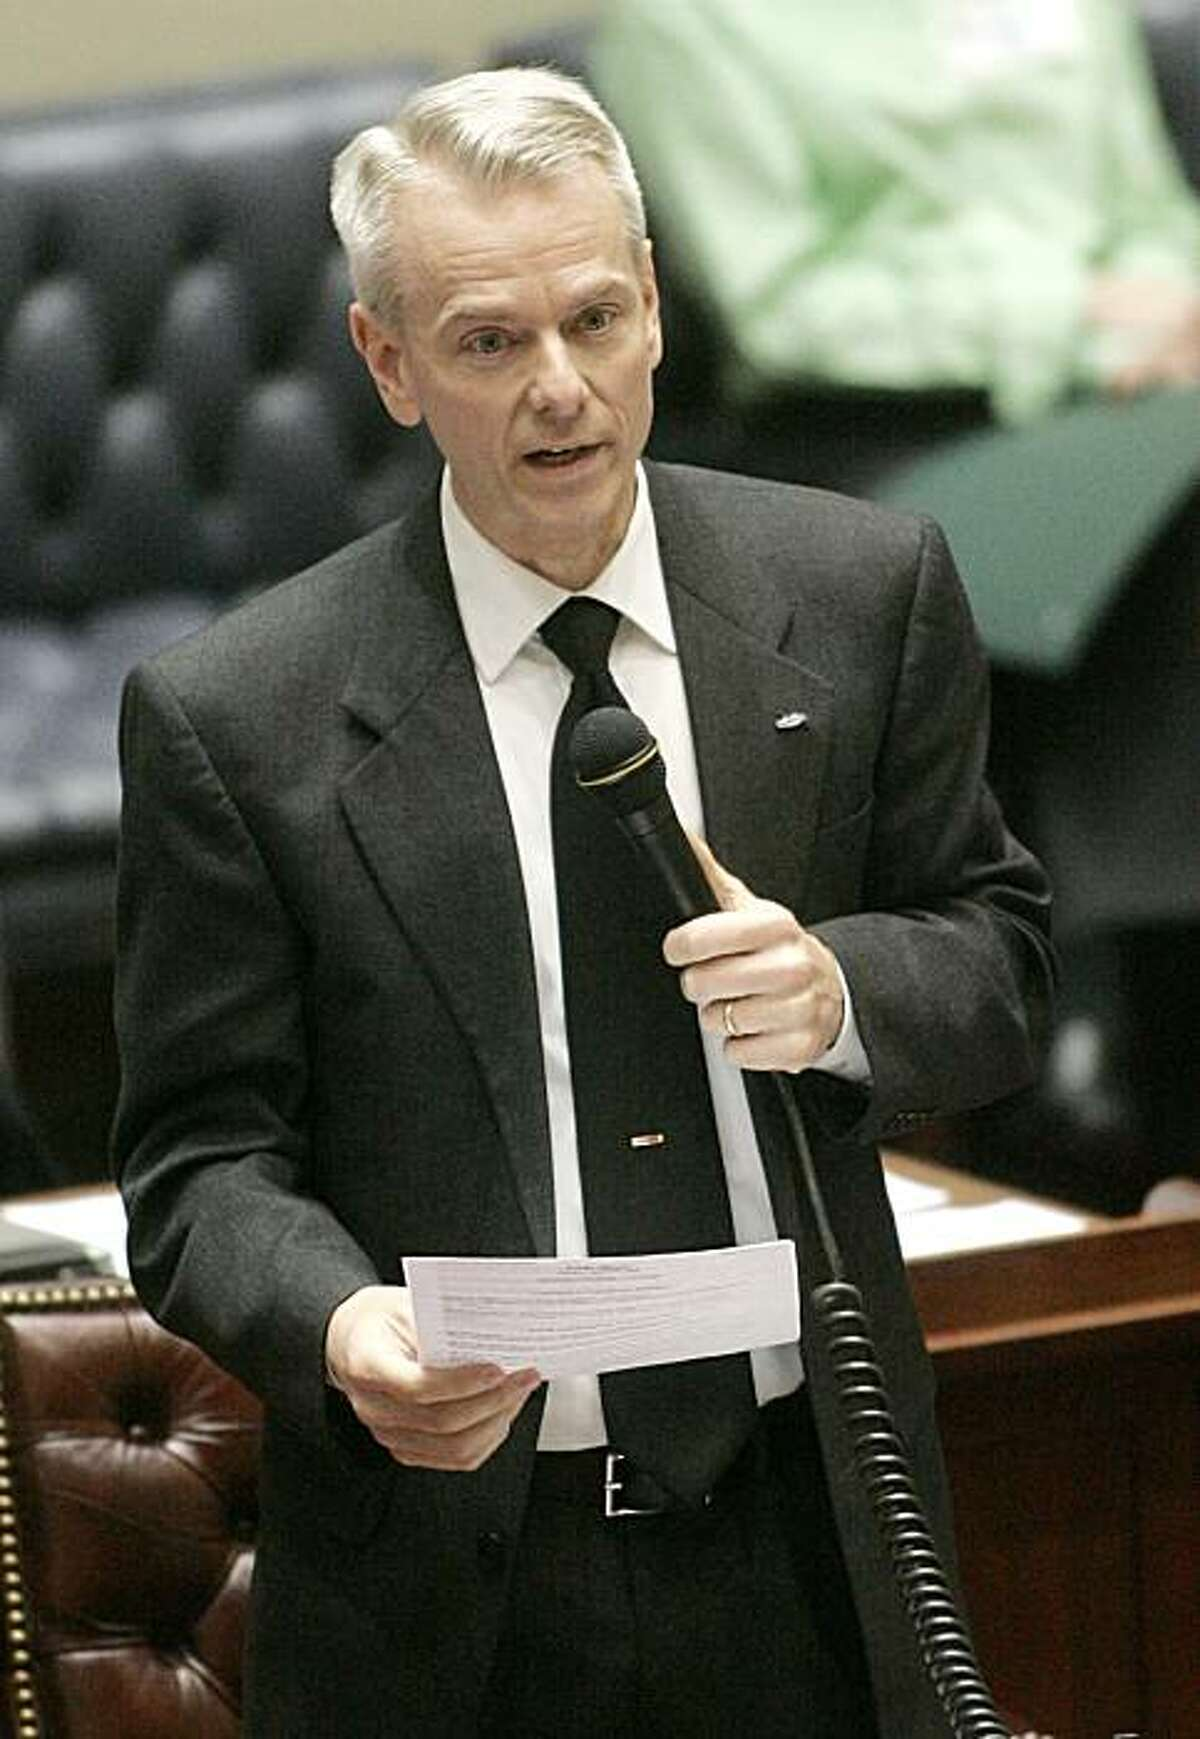 Oklahoma state Sen. Steve Russell, R-Oklahoma City, gestures as he speaks during a debate on an override of an abortion bill on the Oklahoma House floor in Oklahoma City, Tuesday, April 27, 2010. The Oklahoma Senate voted to override Gov. Brad Henry's veto of two abortion bills, clearing the way for the bills to become law without his signature.